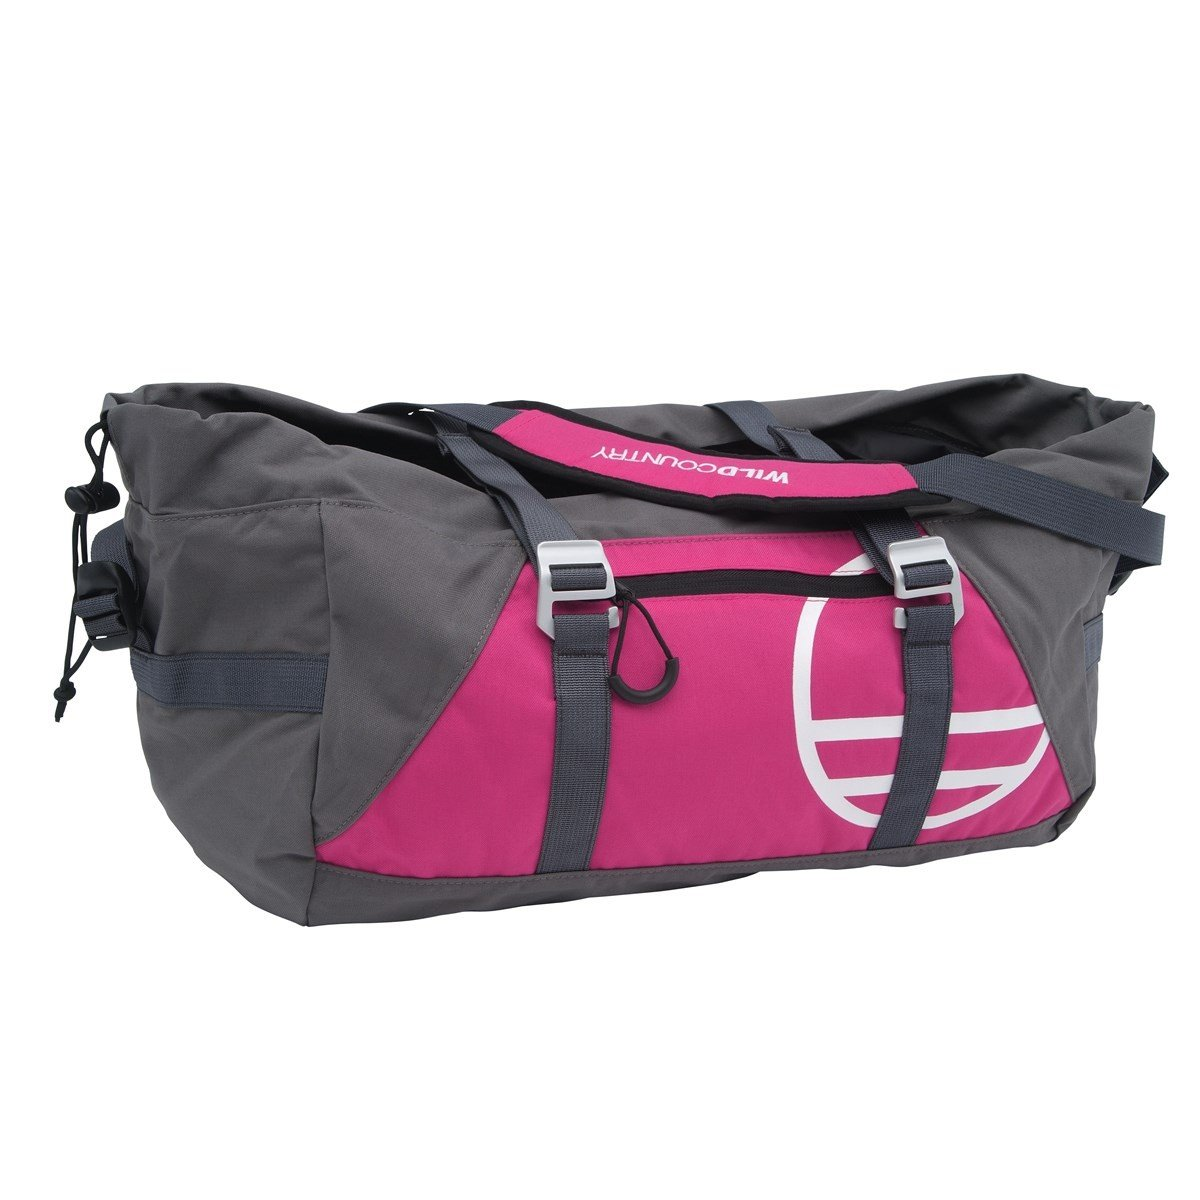 Wildcountry Bag, Ruby